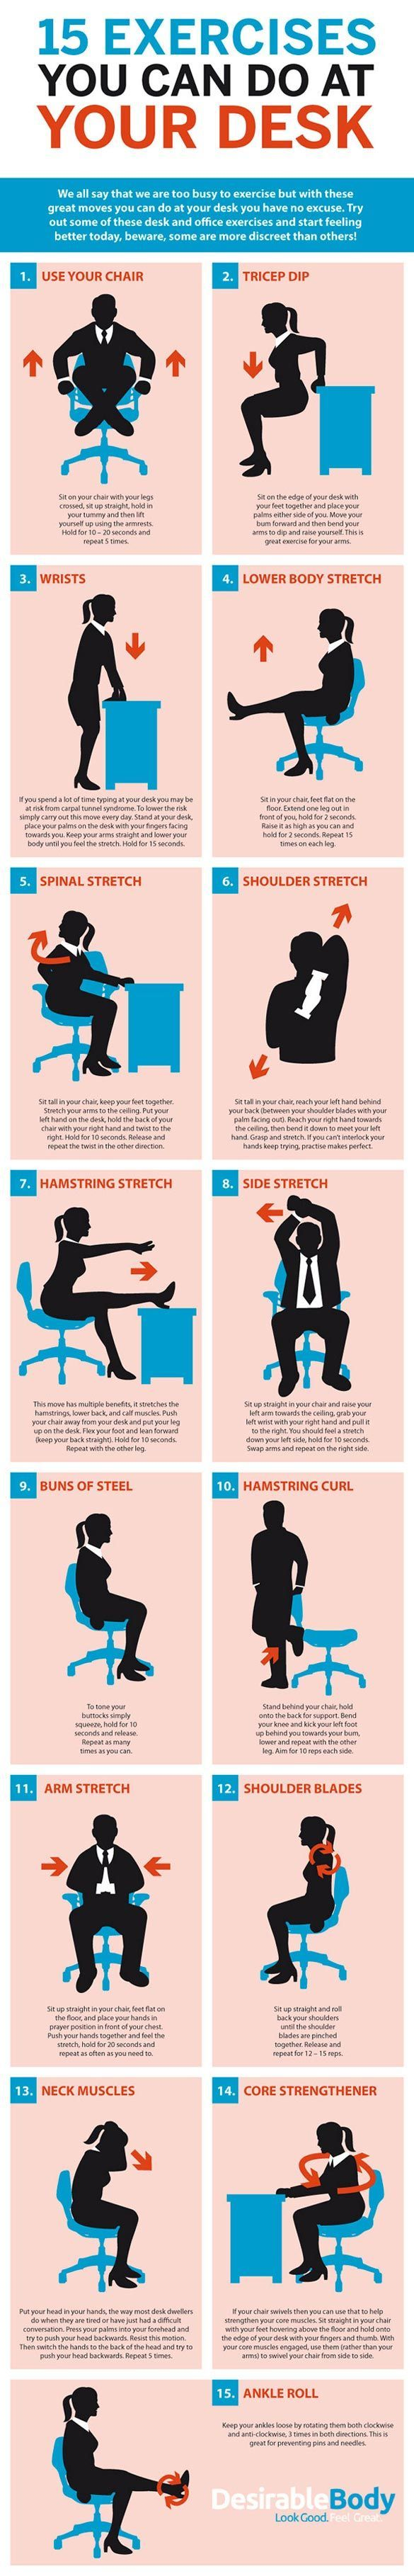 15 Exercises You Can Do at Your Desk